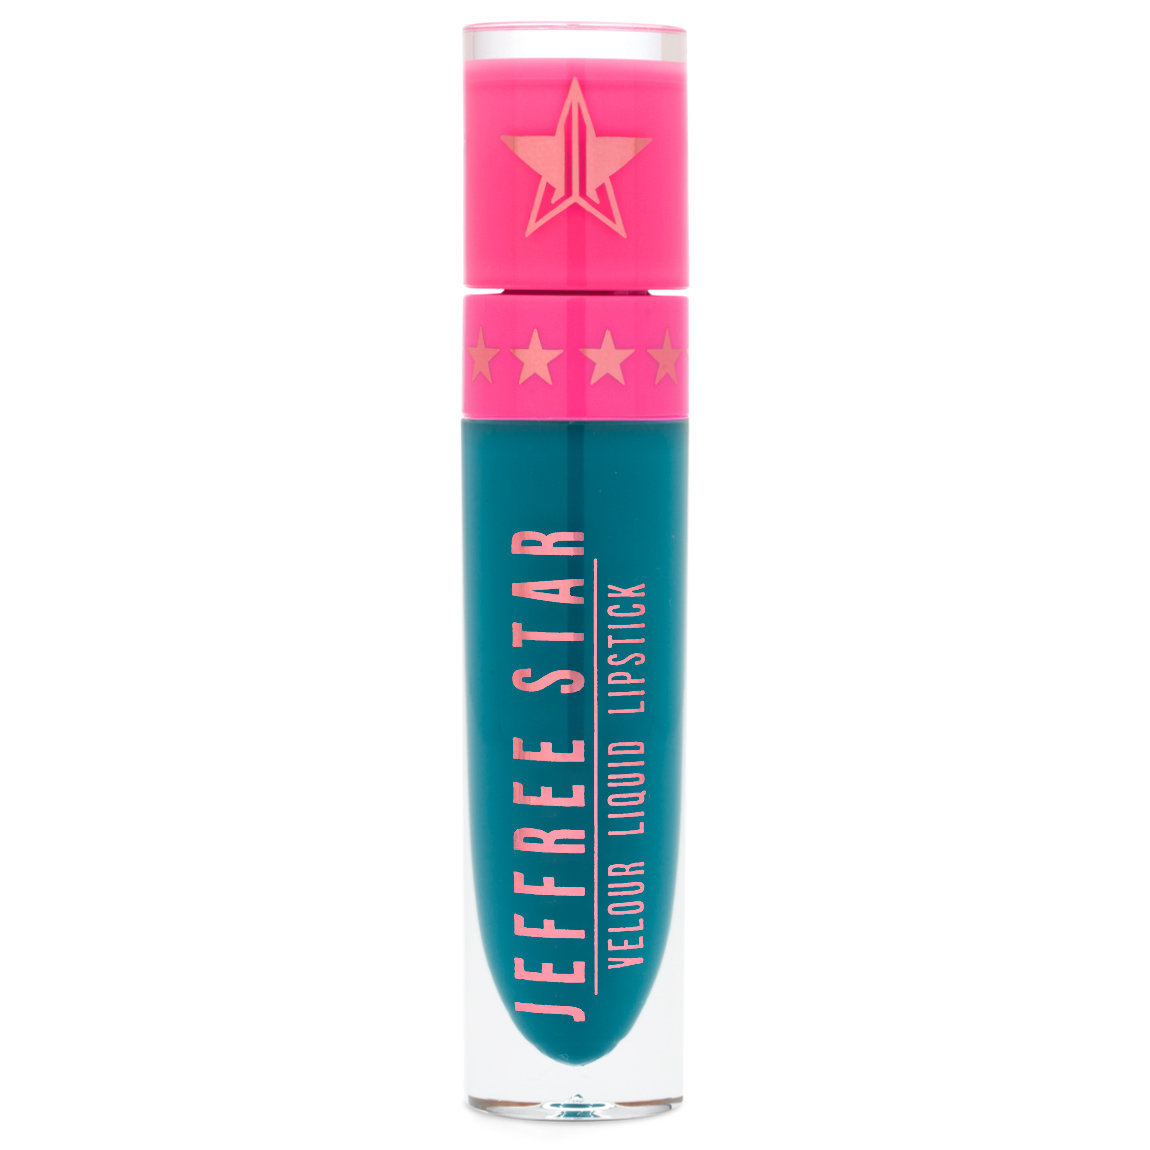 Jeffree Star Cosmetics Velour Liquid Lipstick Huntington Beach